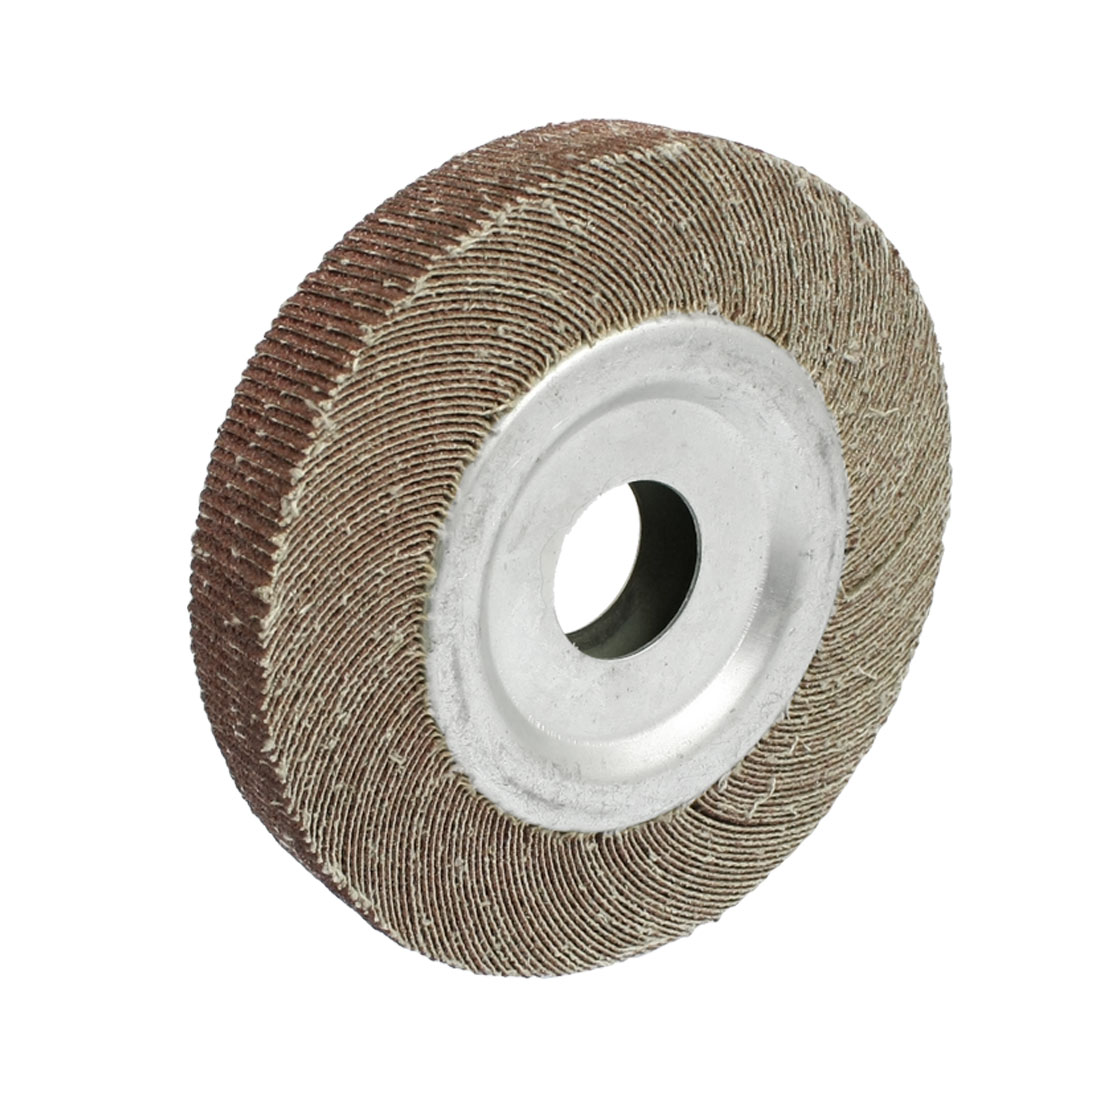 120mm Diameter 80# Polishing Flap Wheel Disc for Stainless Steel